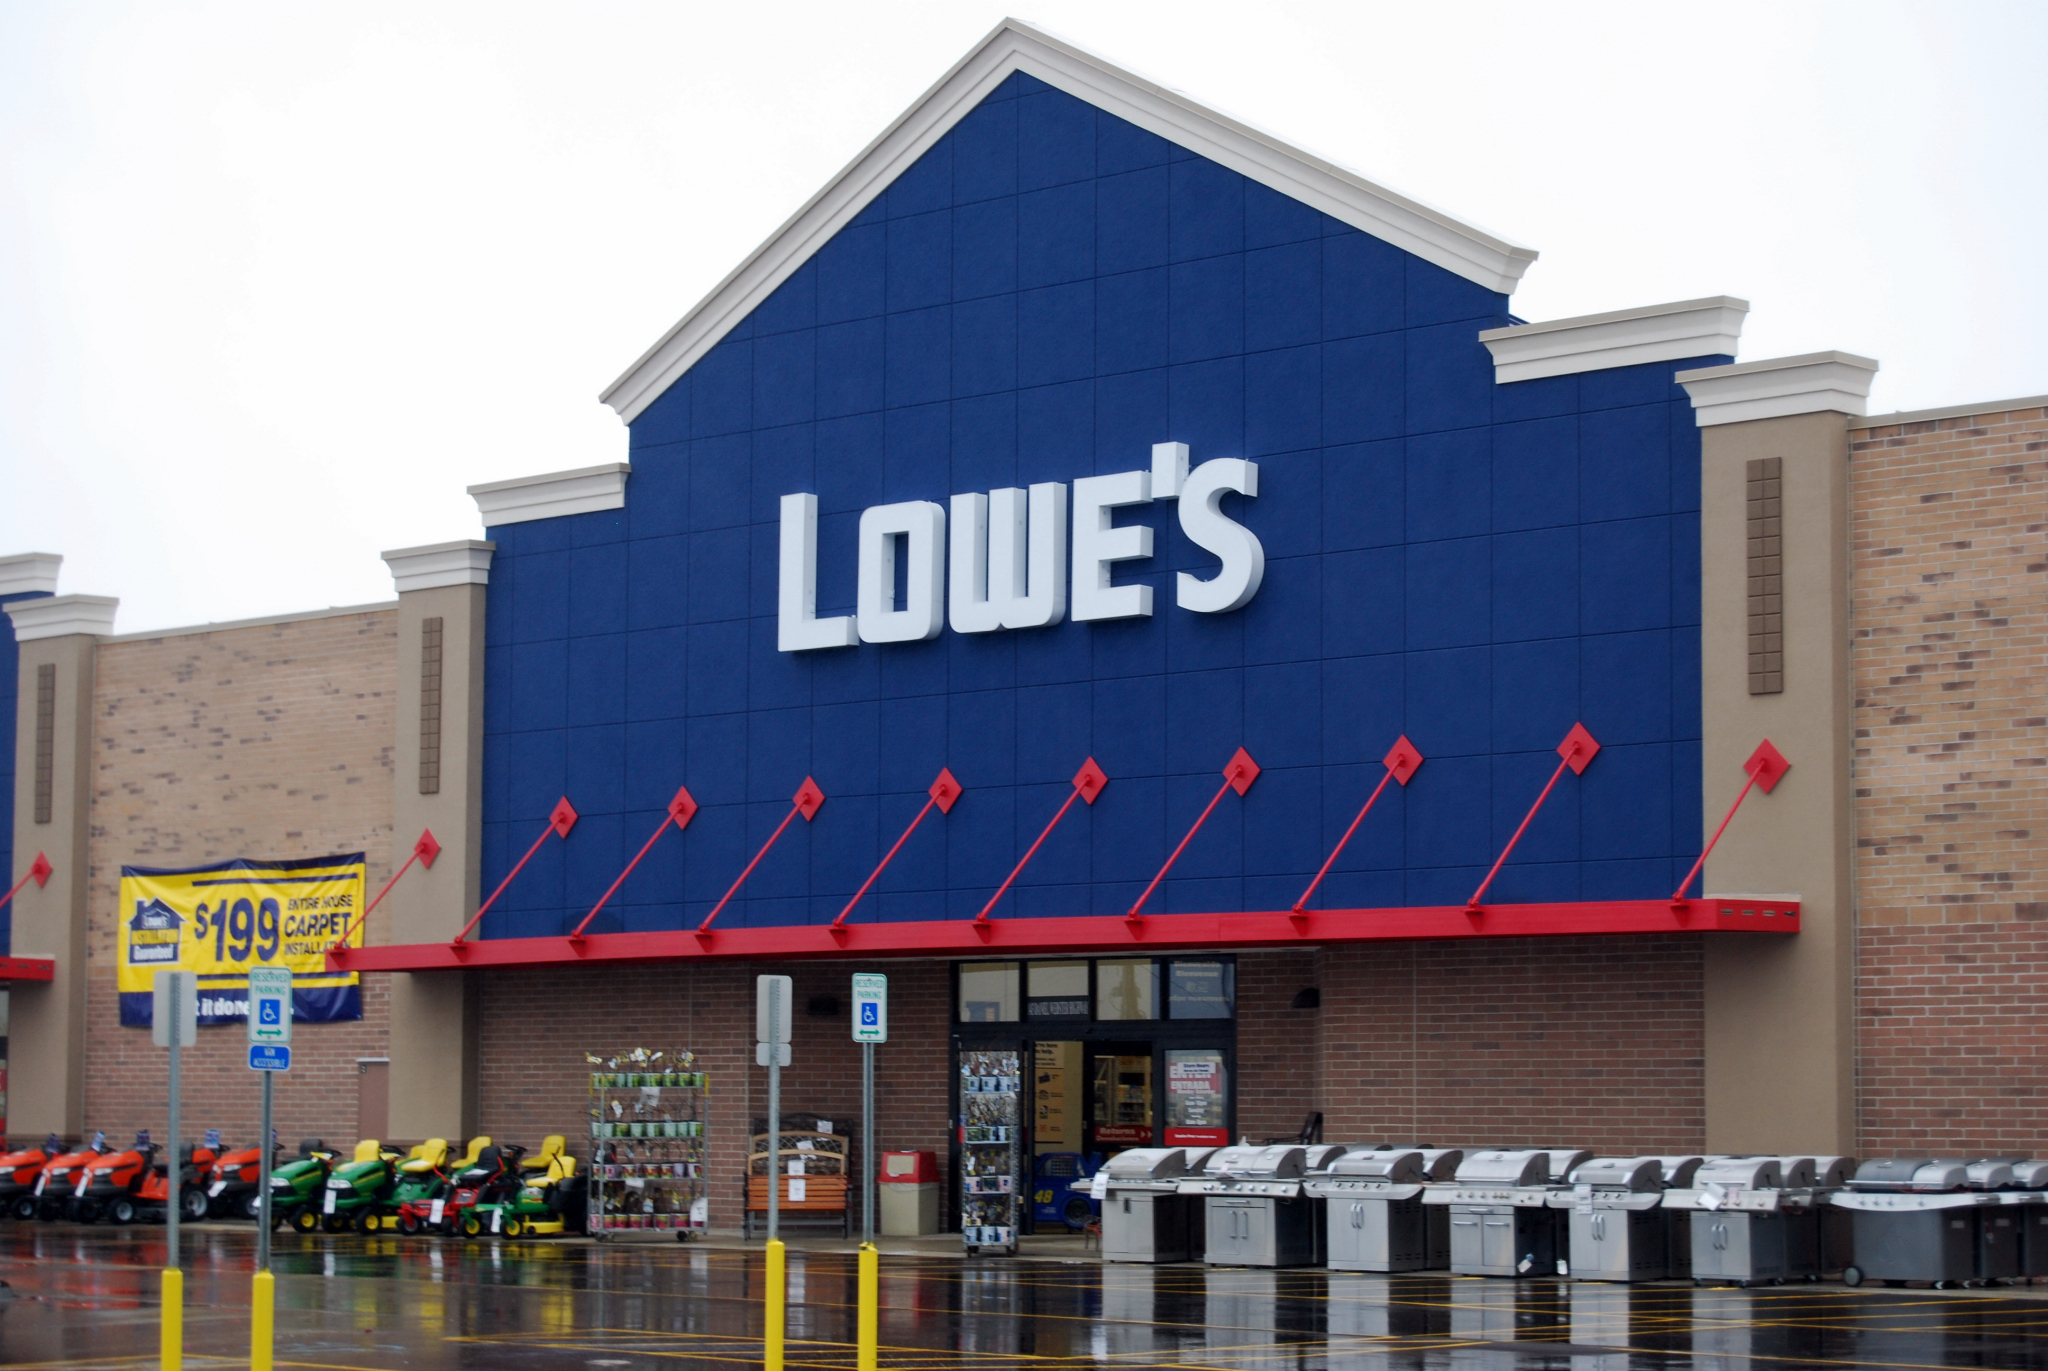 Http Getlevelten Com Blog Chris Sloan Social Media World Home Depot Fails And Lowes Succeeds